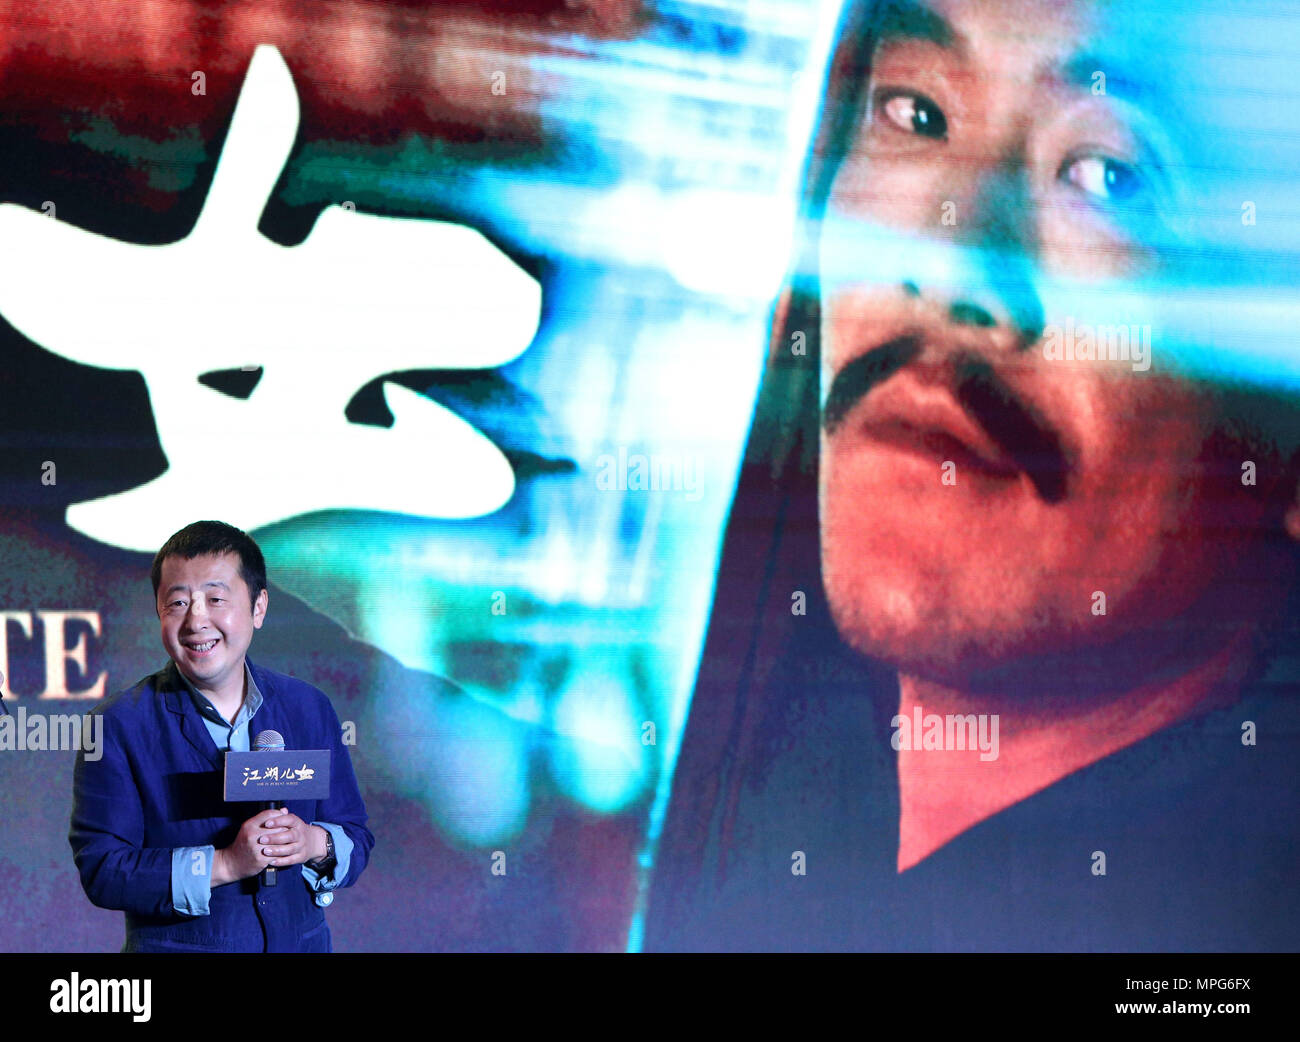 """Beijing, China. 23rd May, 2018. Director Jia Zhangke attends a press conference of the film """"Ash is Purest White"""" in Beijing, capital of China, May 23, 2018. The film directed by Jia will be on shown on September 21 across the country. Credit: Gao Jing/Xinhua/Alamy Live News Stock Photo"""